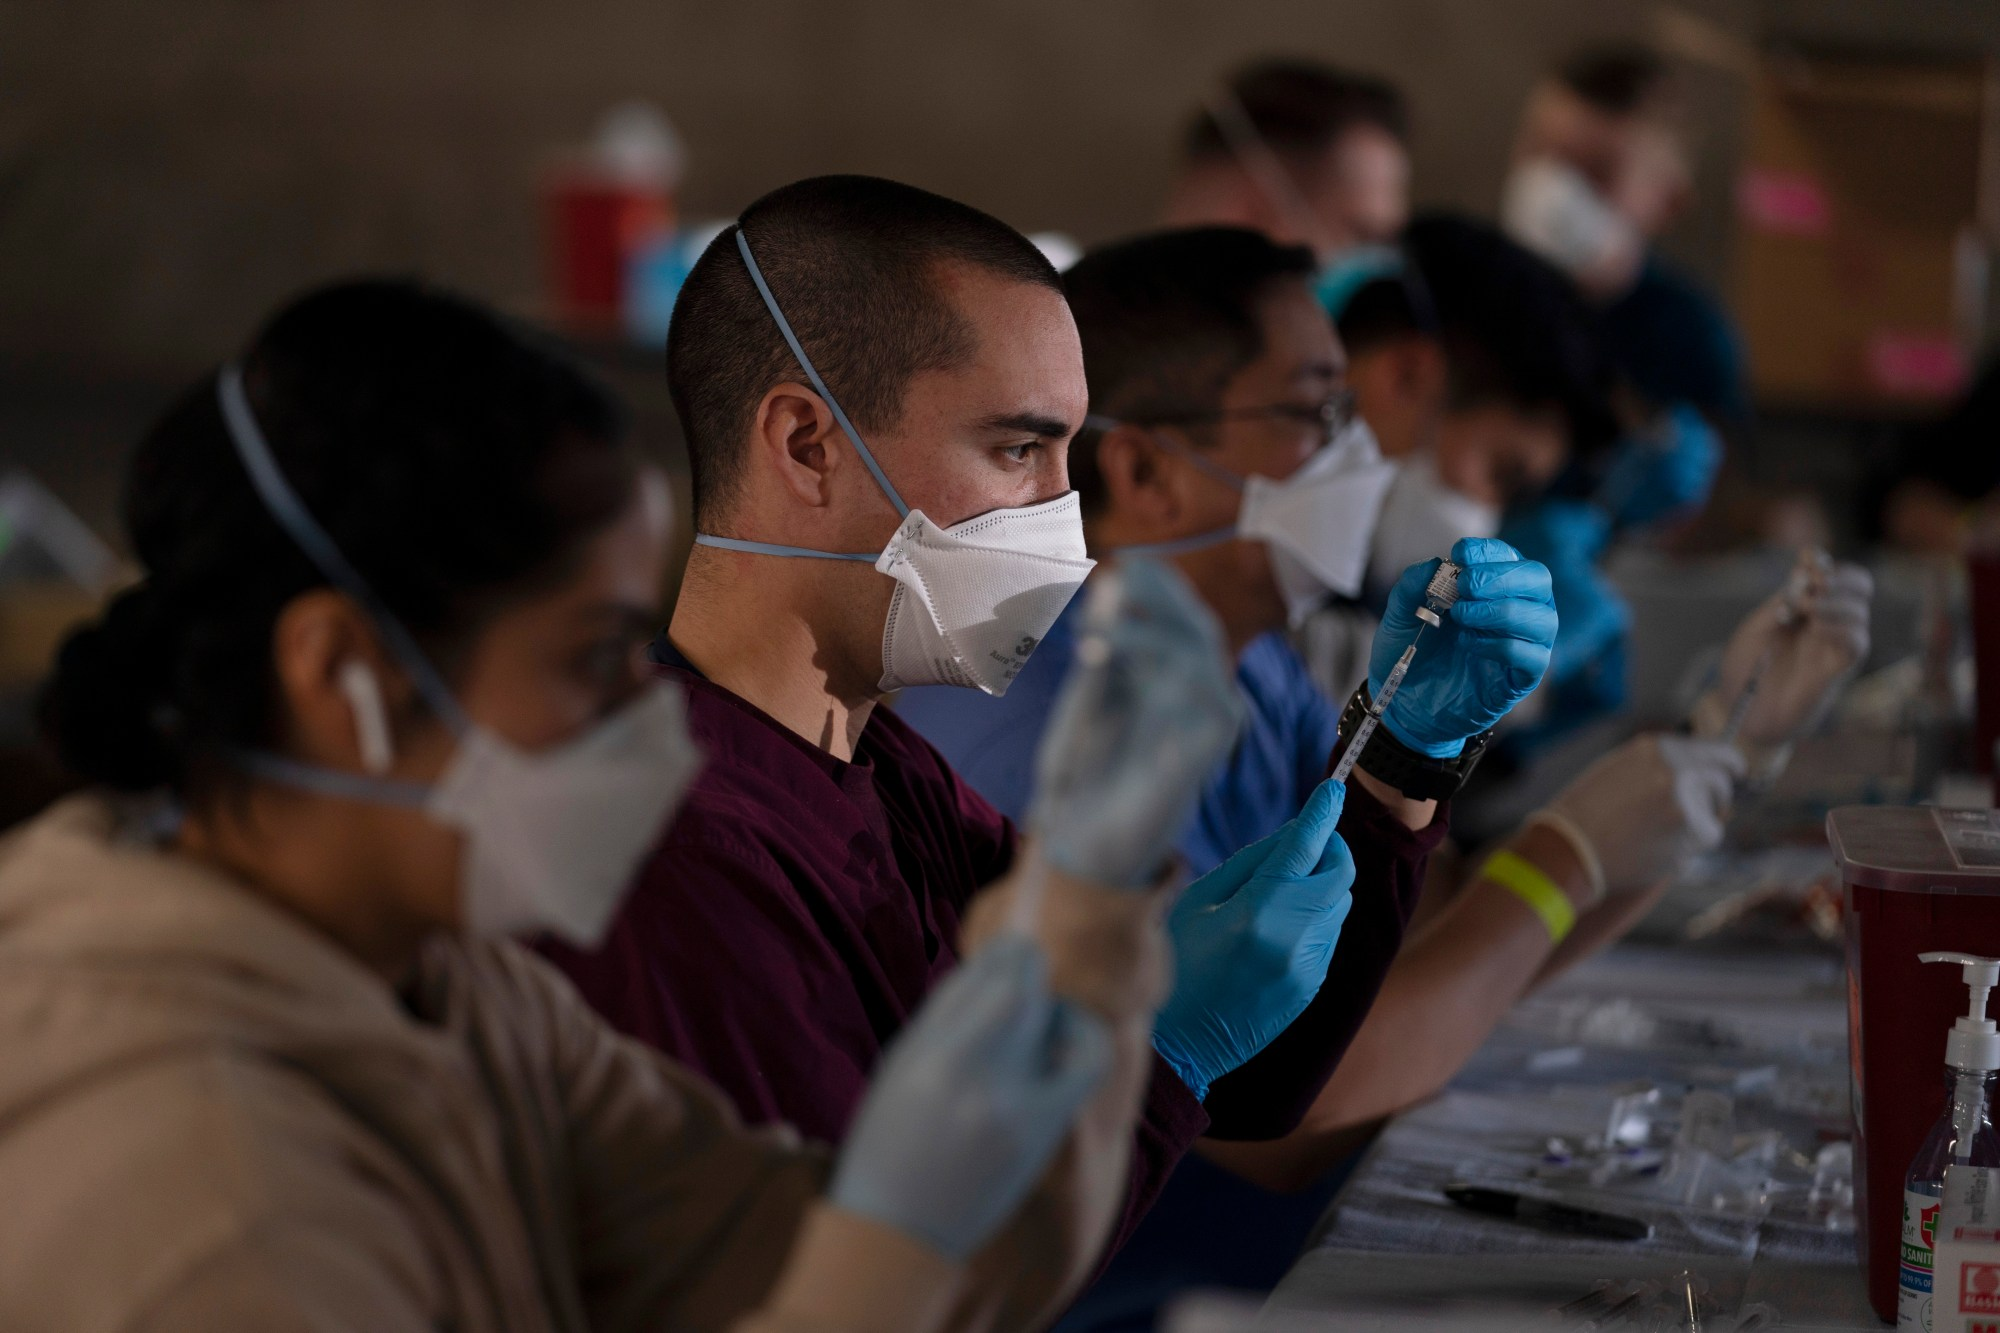 Members of the California National Guard fill syringes with Pfizer's COVID-19 vaccine at a site in Long Beach on March 5, 2021. (Jae C. Hong / Associated Press)